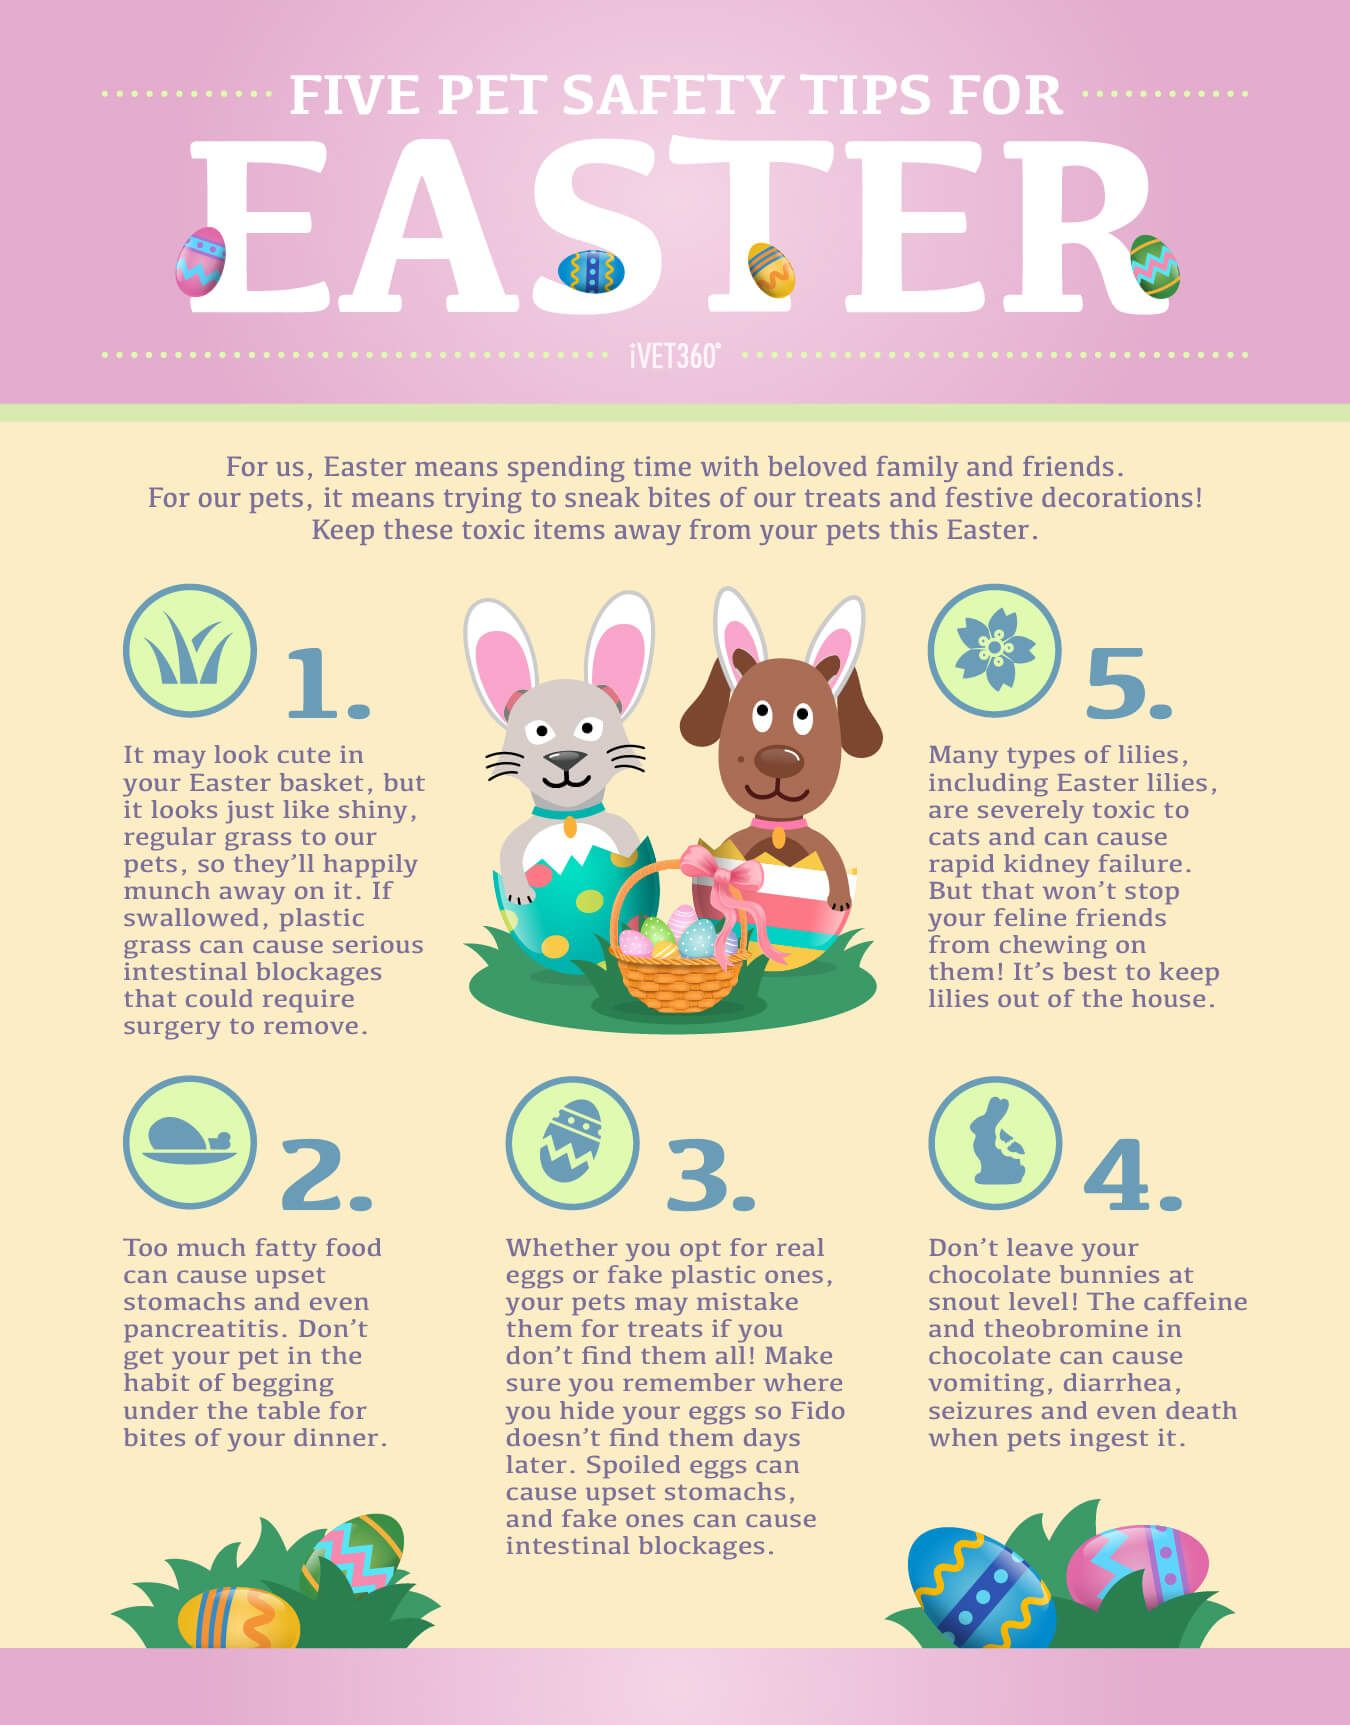 5 Pet Safety Tips For Easter Infographic Pet Safety Easter Pets Pets